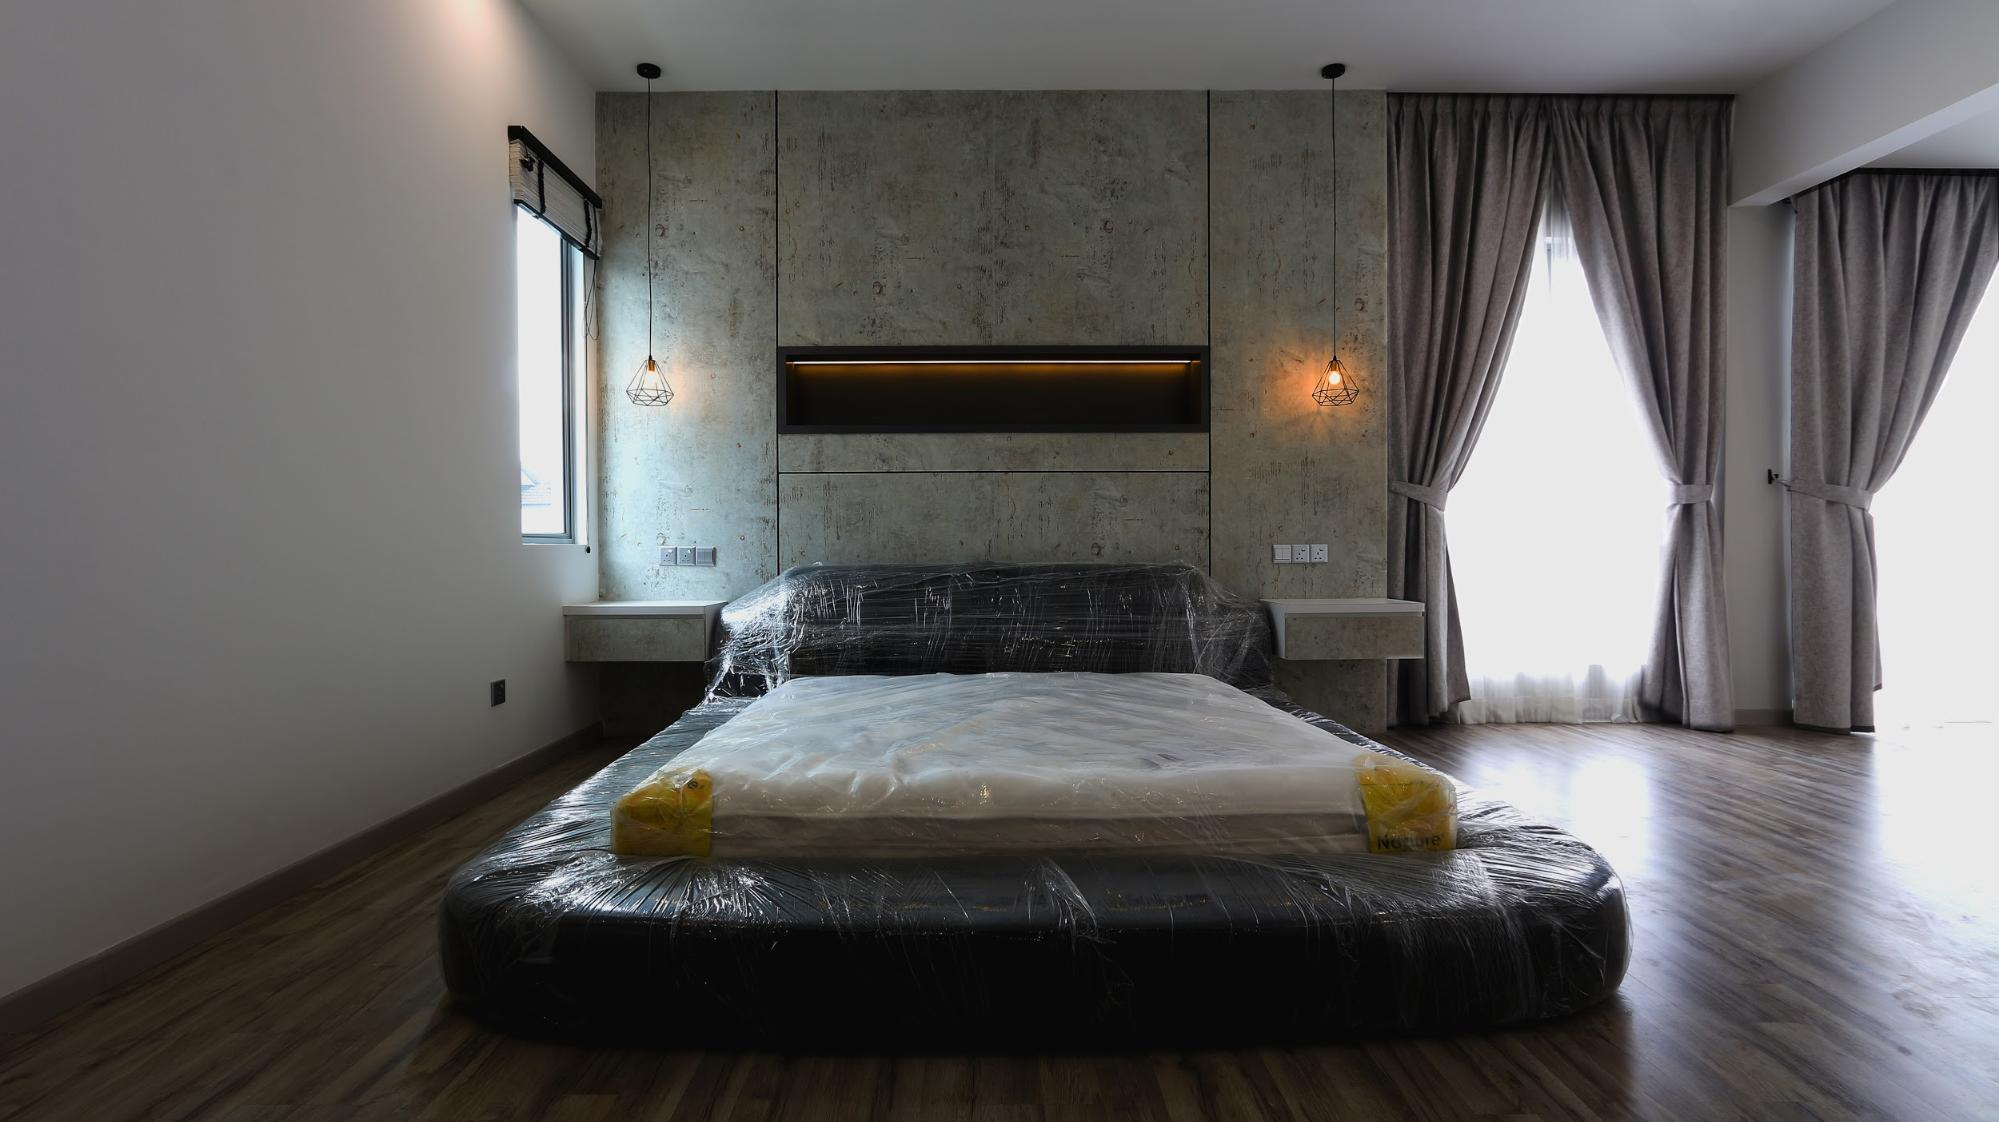 Master bedroom bed and feature wall in modern industrial design